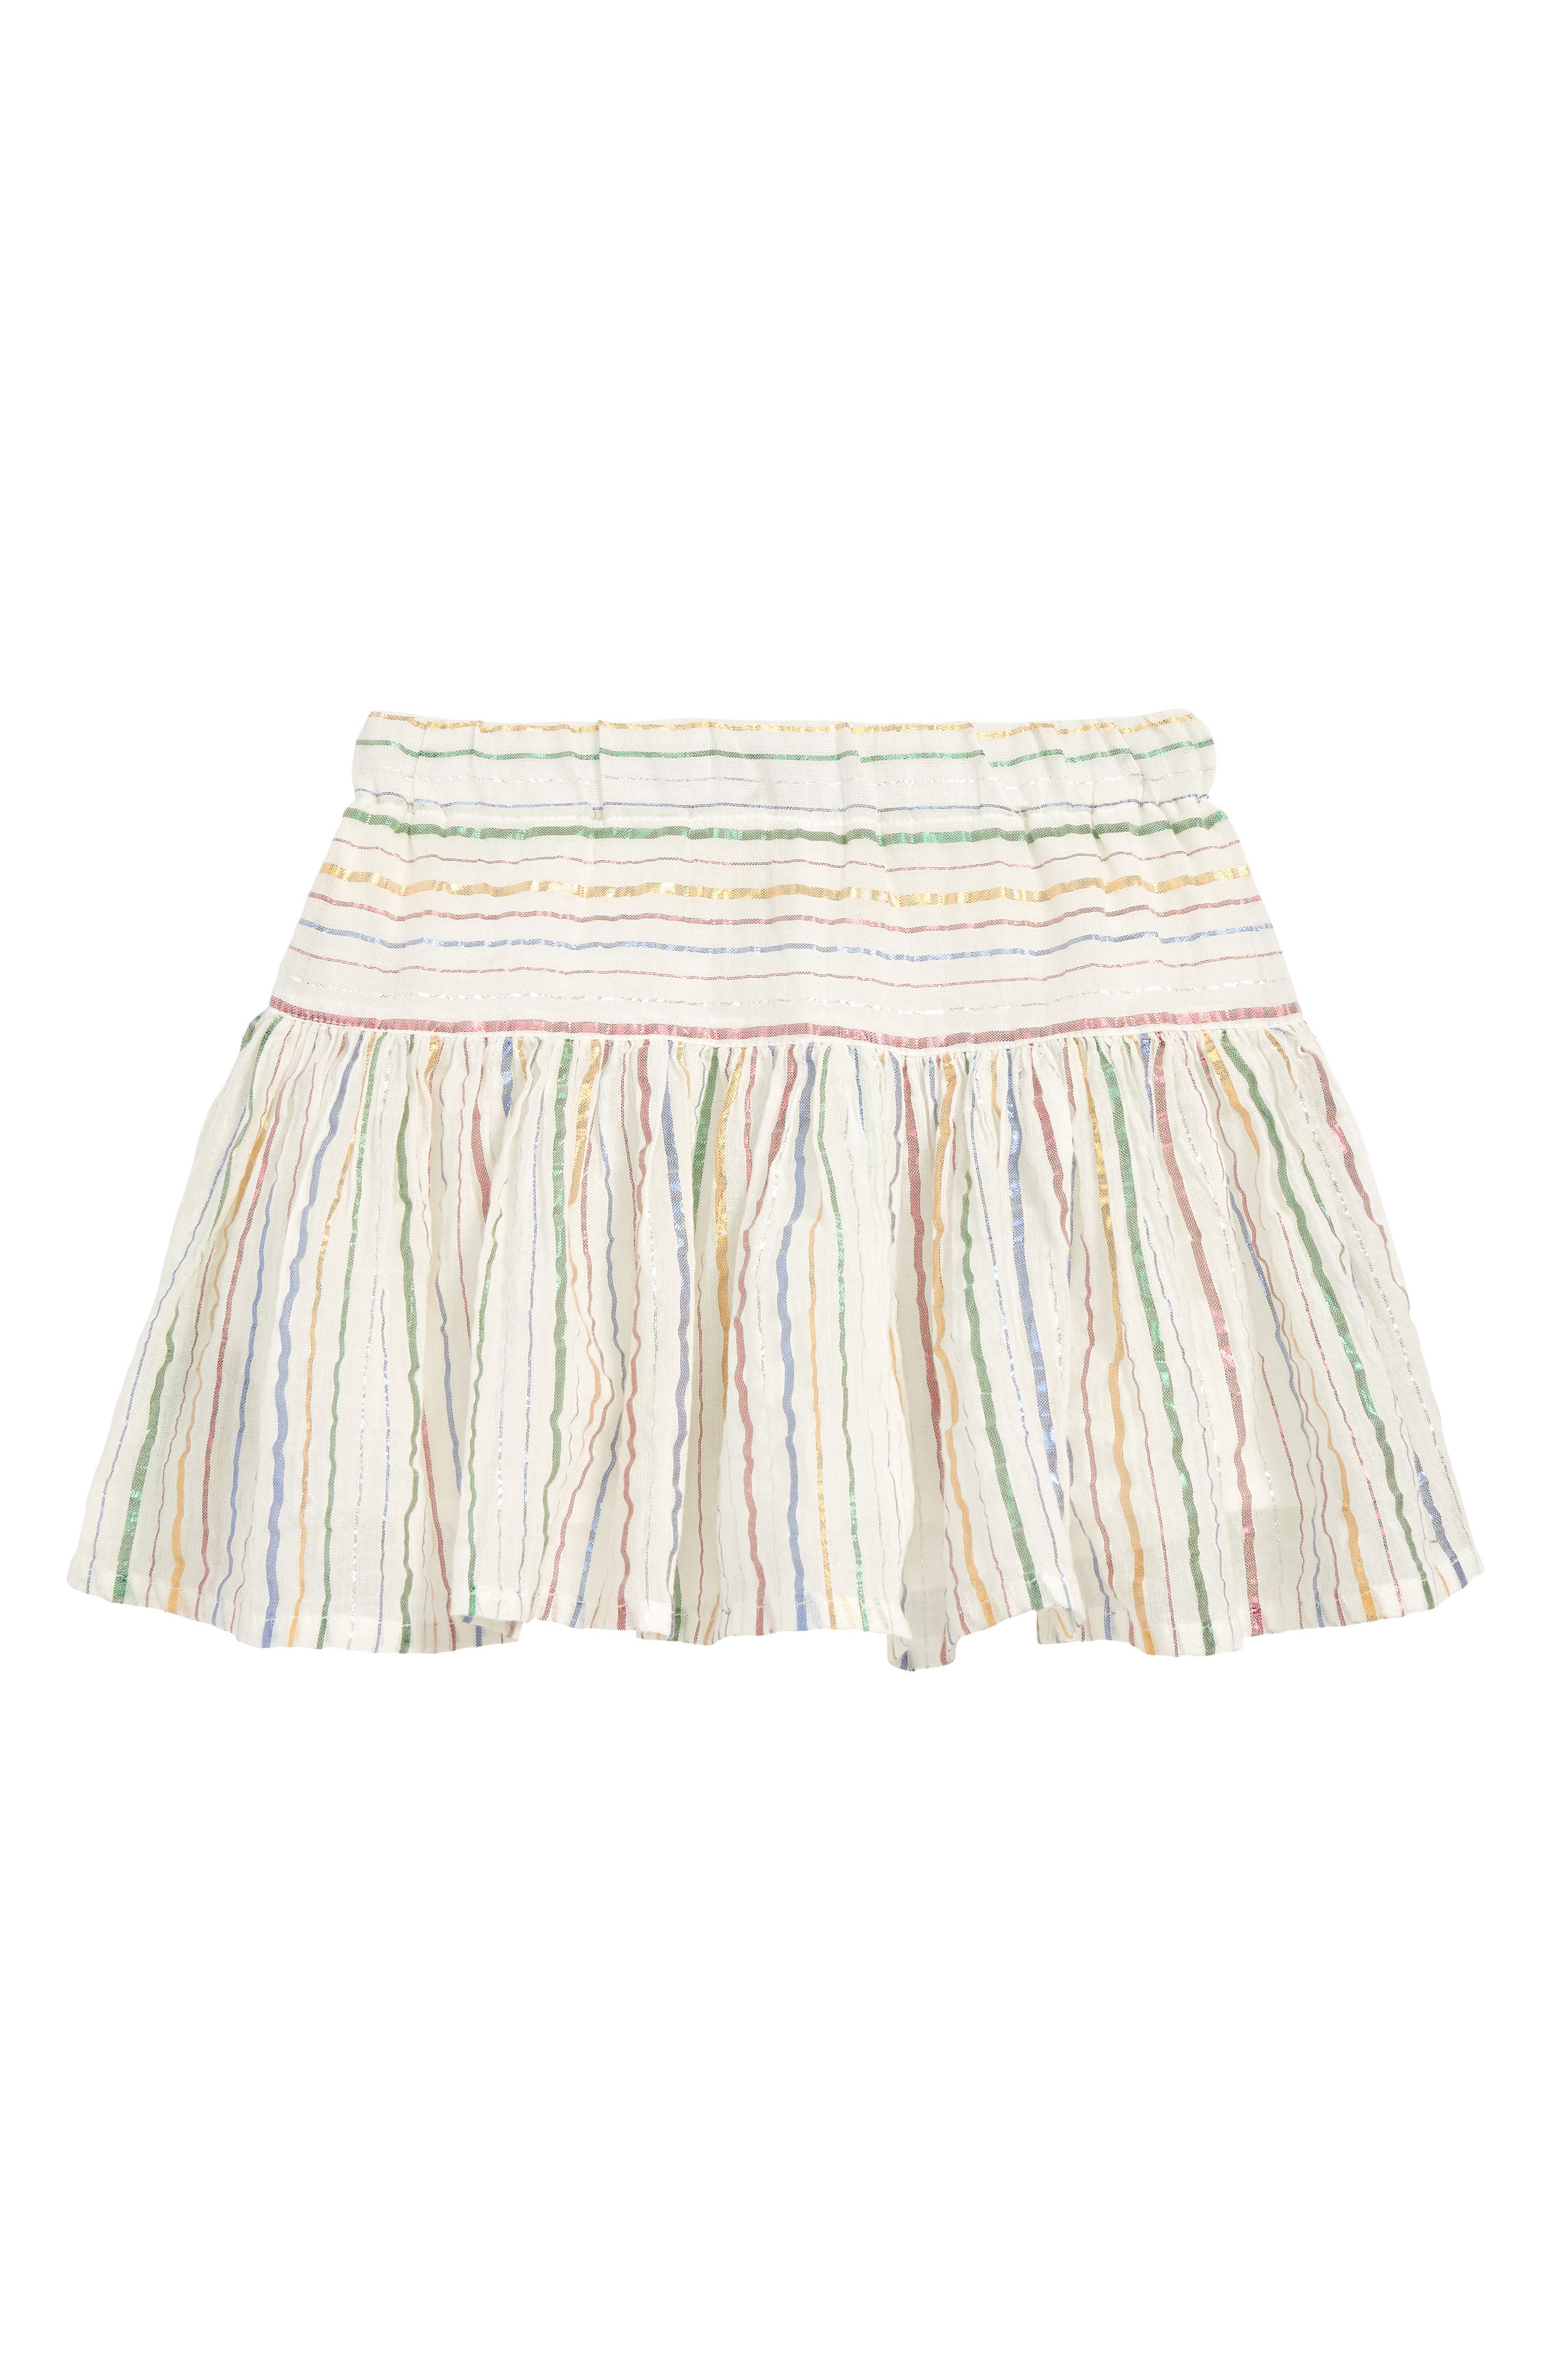 PEEK AREN'T YOU CURIOUS Nora Stripe Skirt, Main, color, IVORY